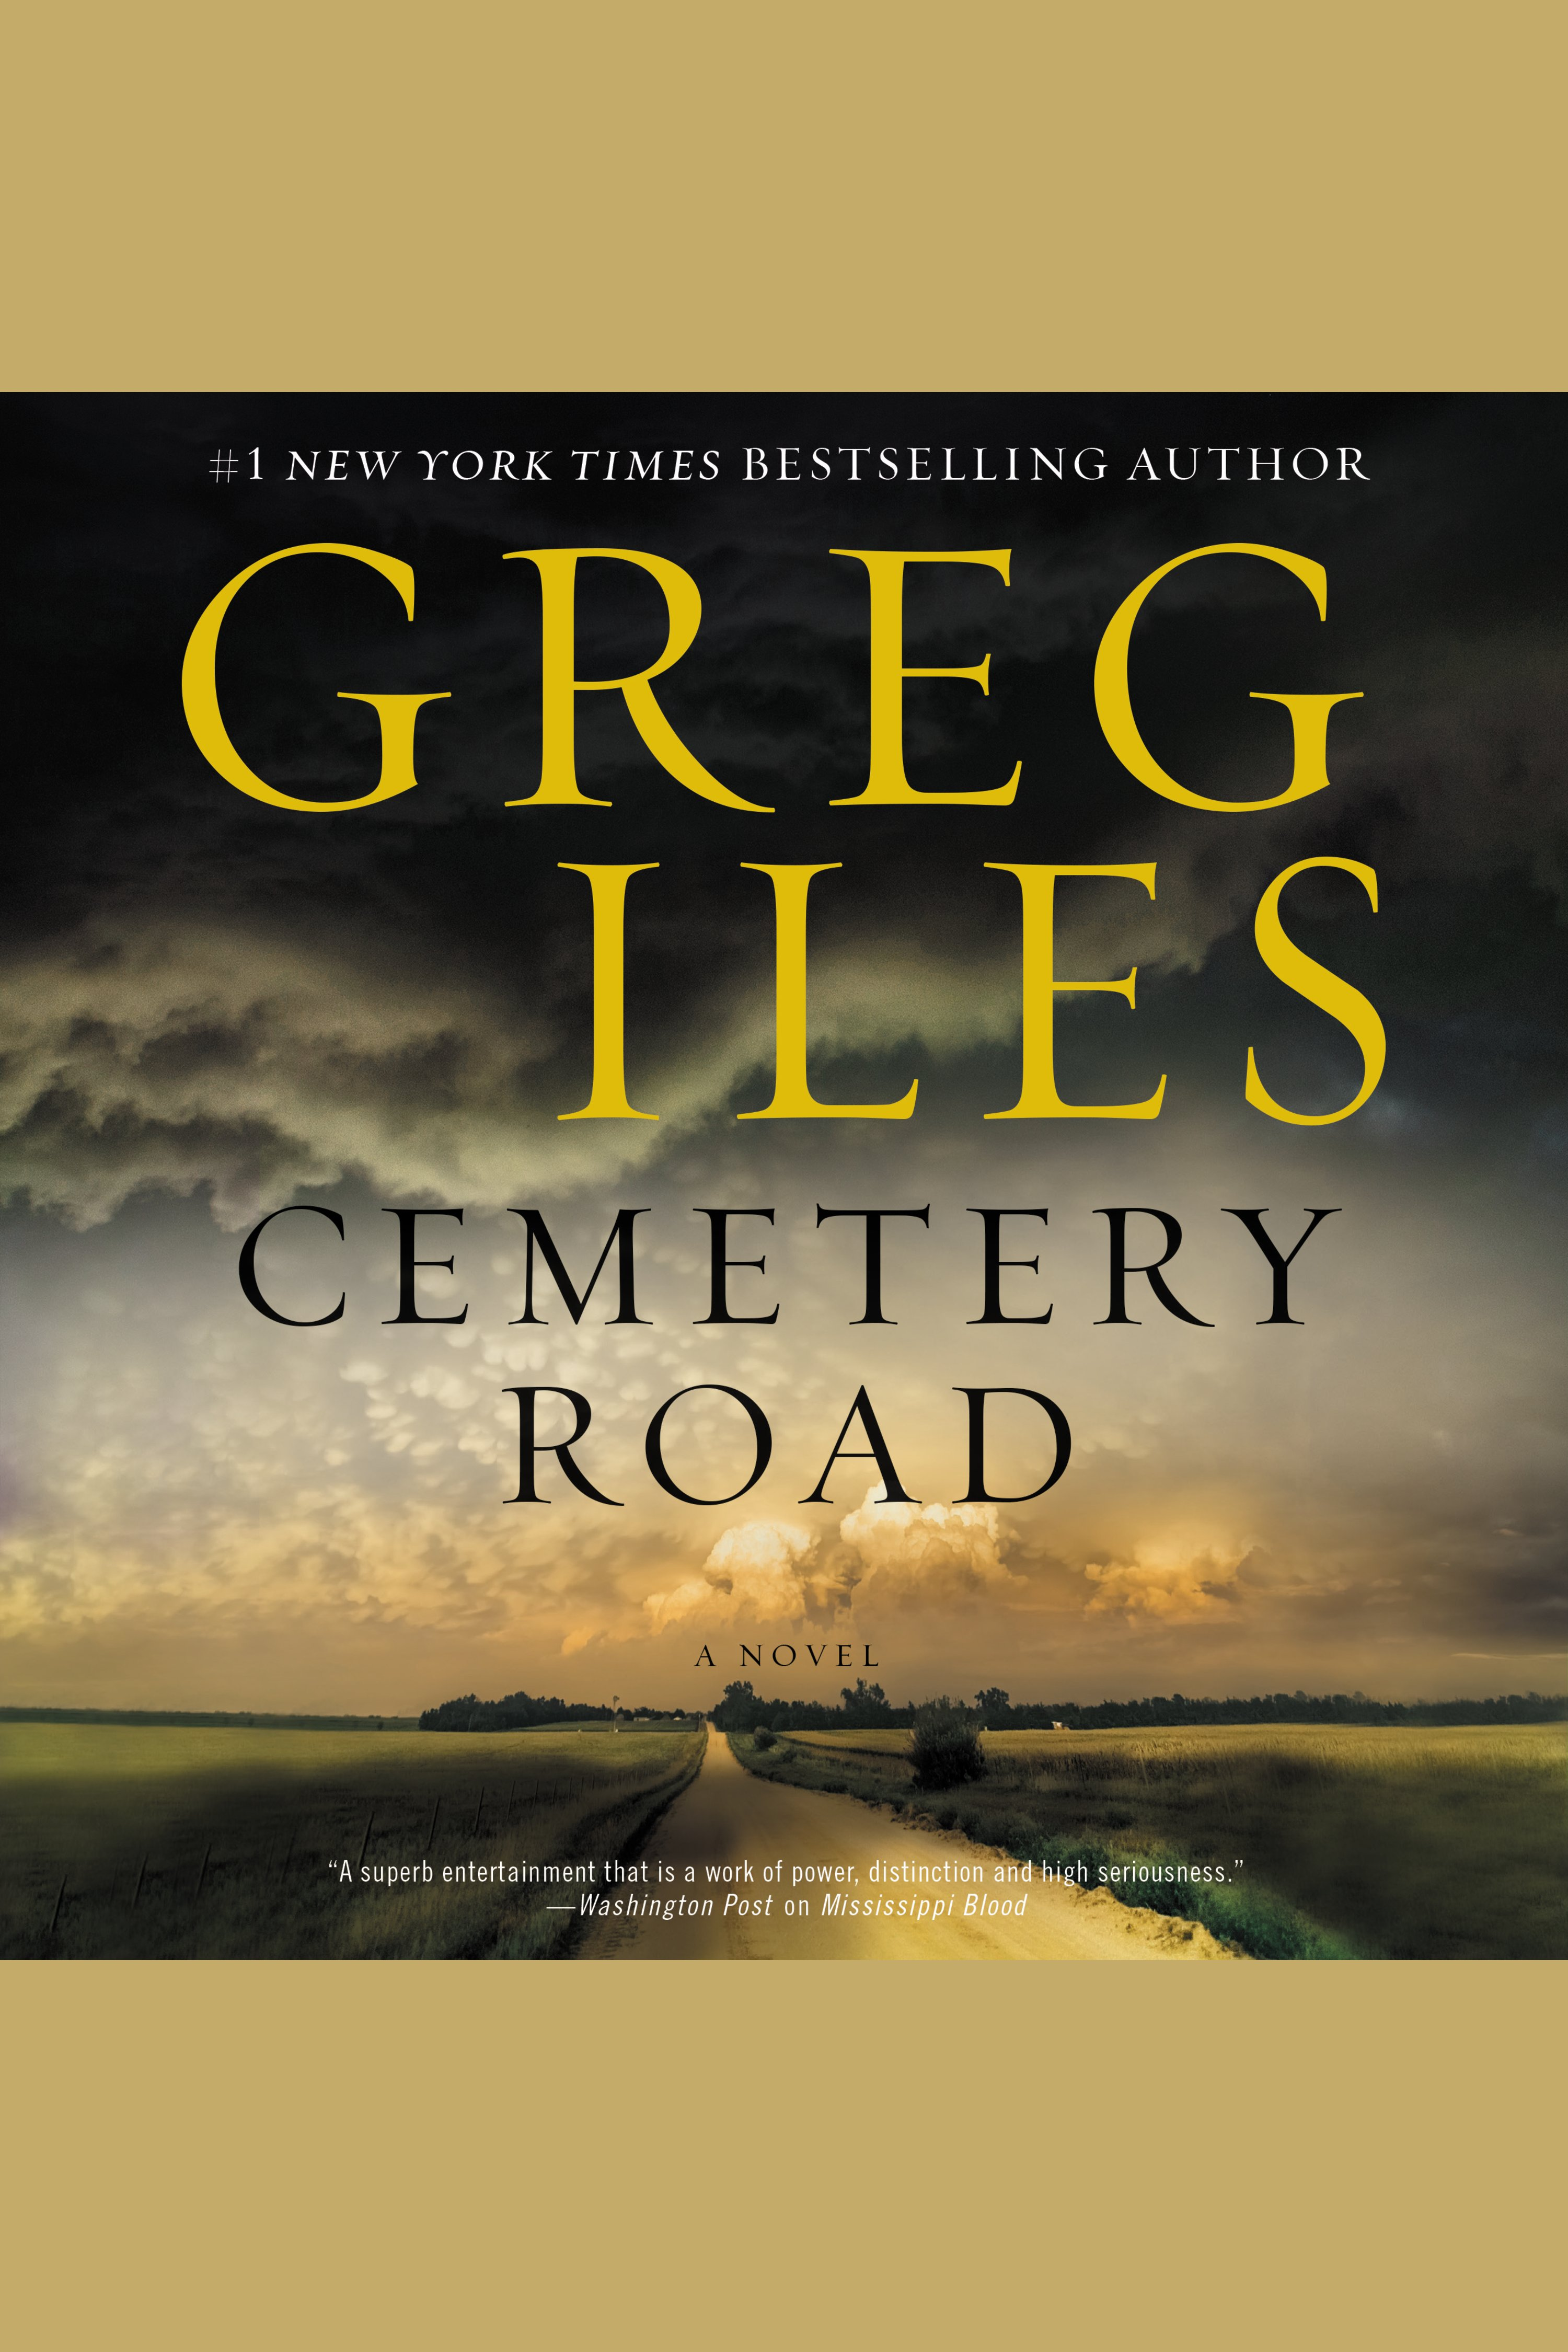 Cemetery Road A Novel